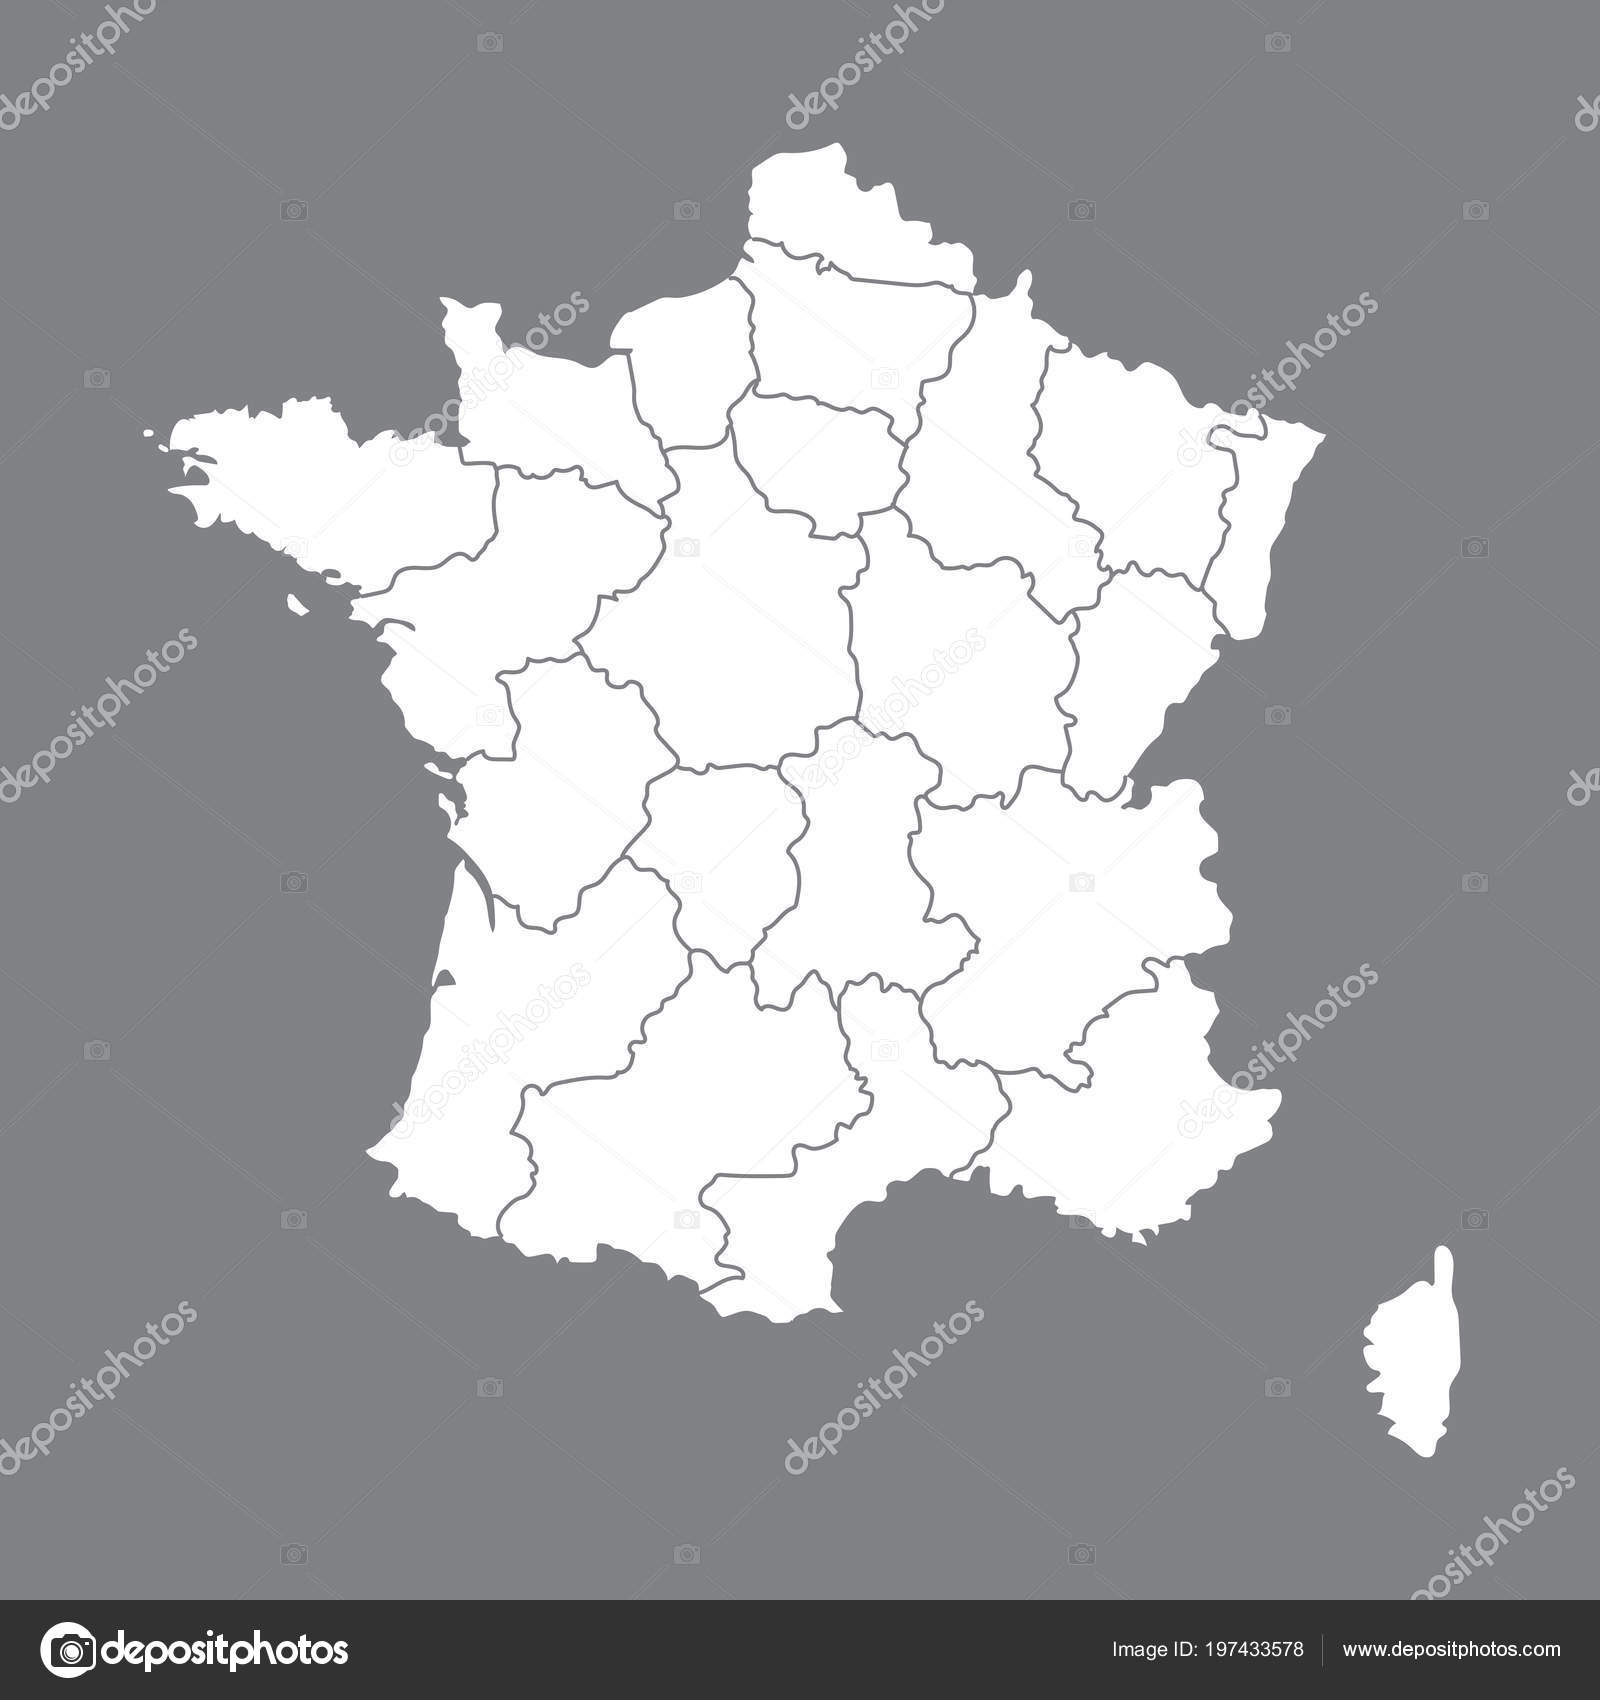 Map Of France With Regions.Blank Map France High Quality Map France Borders Regions Stock